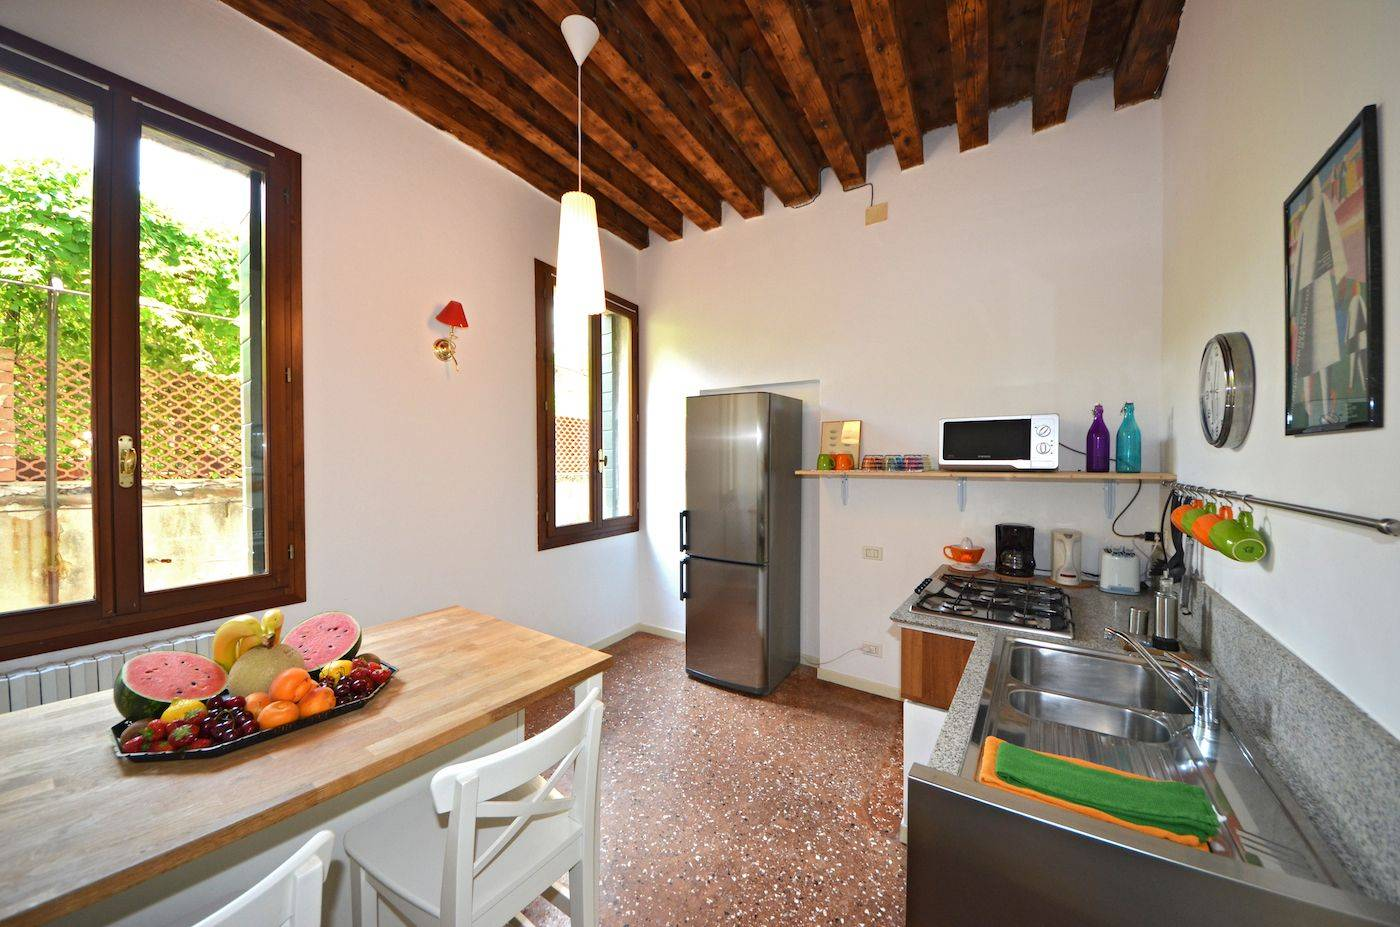 the spacious and bright kitchen with breakfast table for two